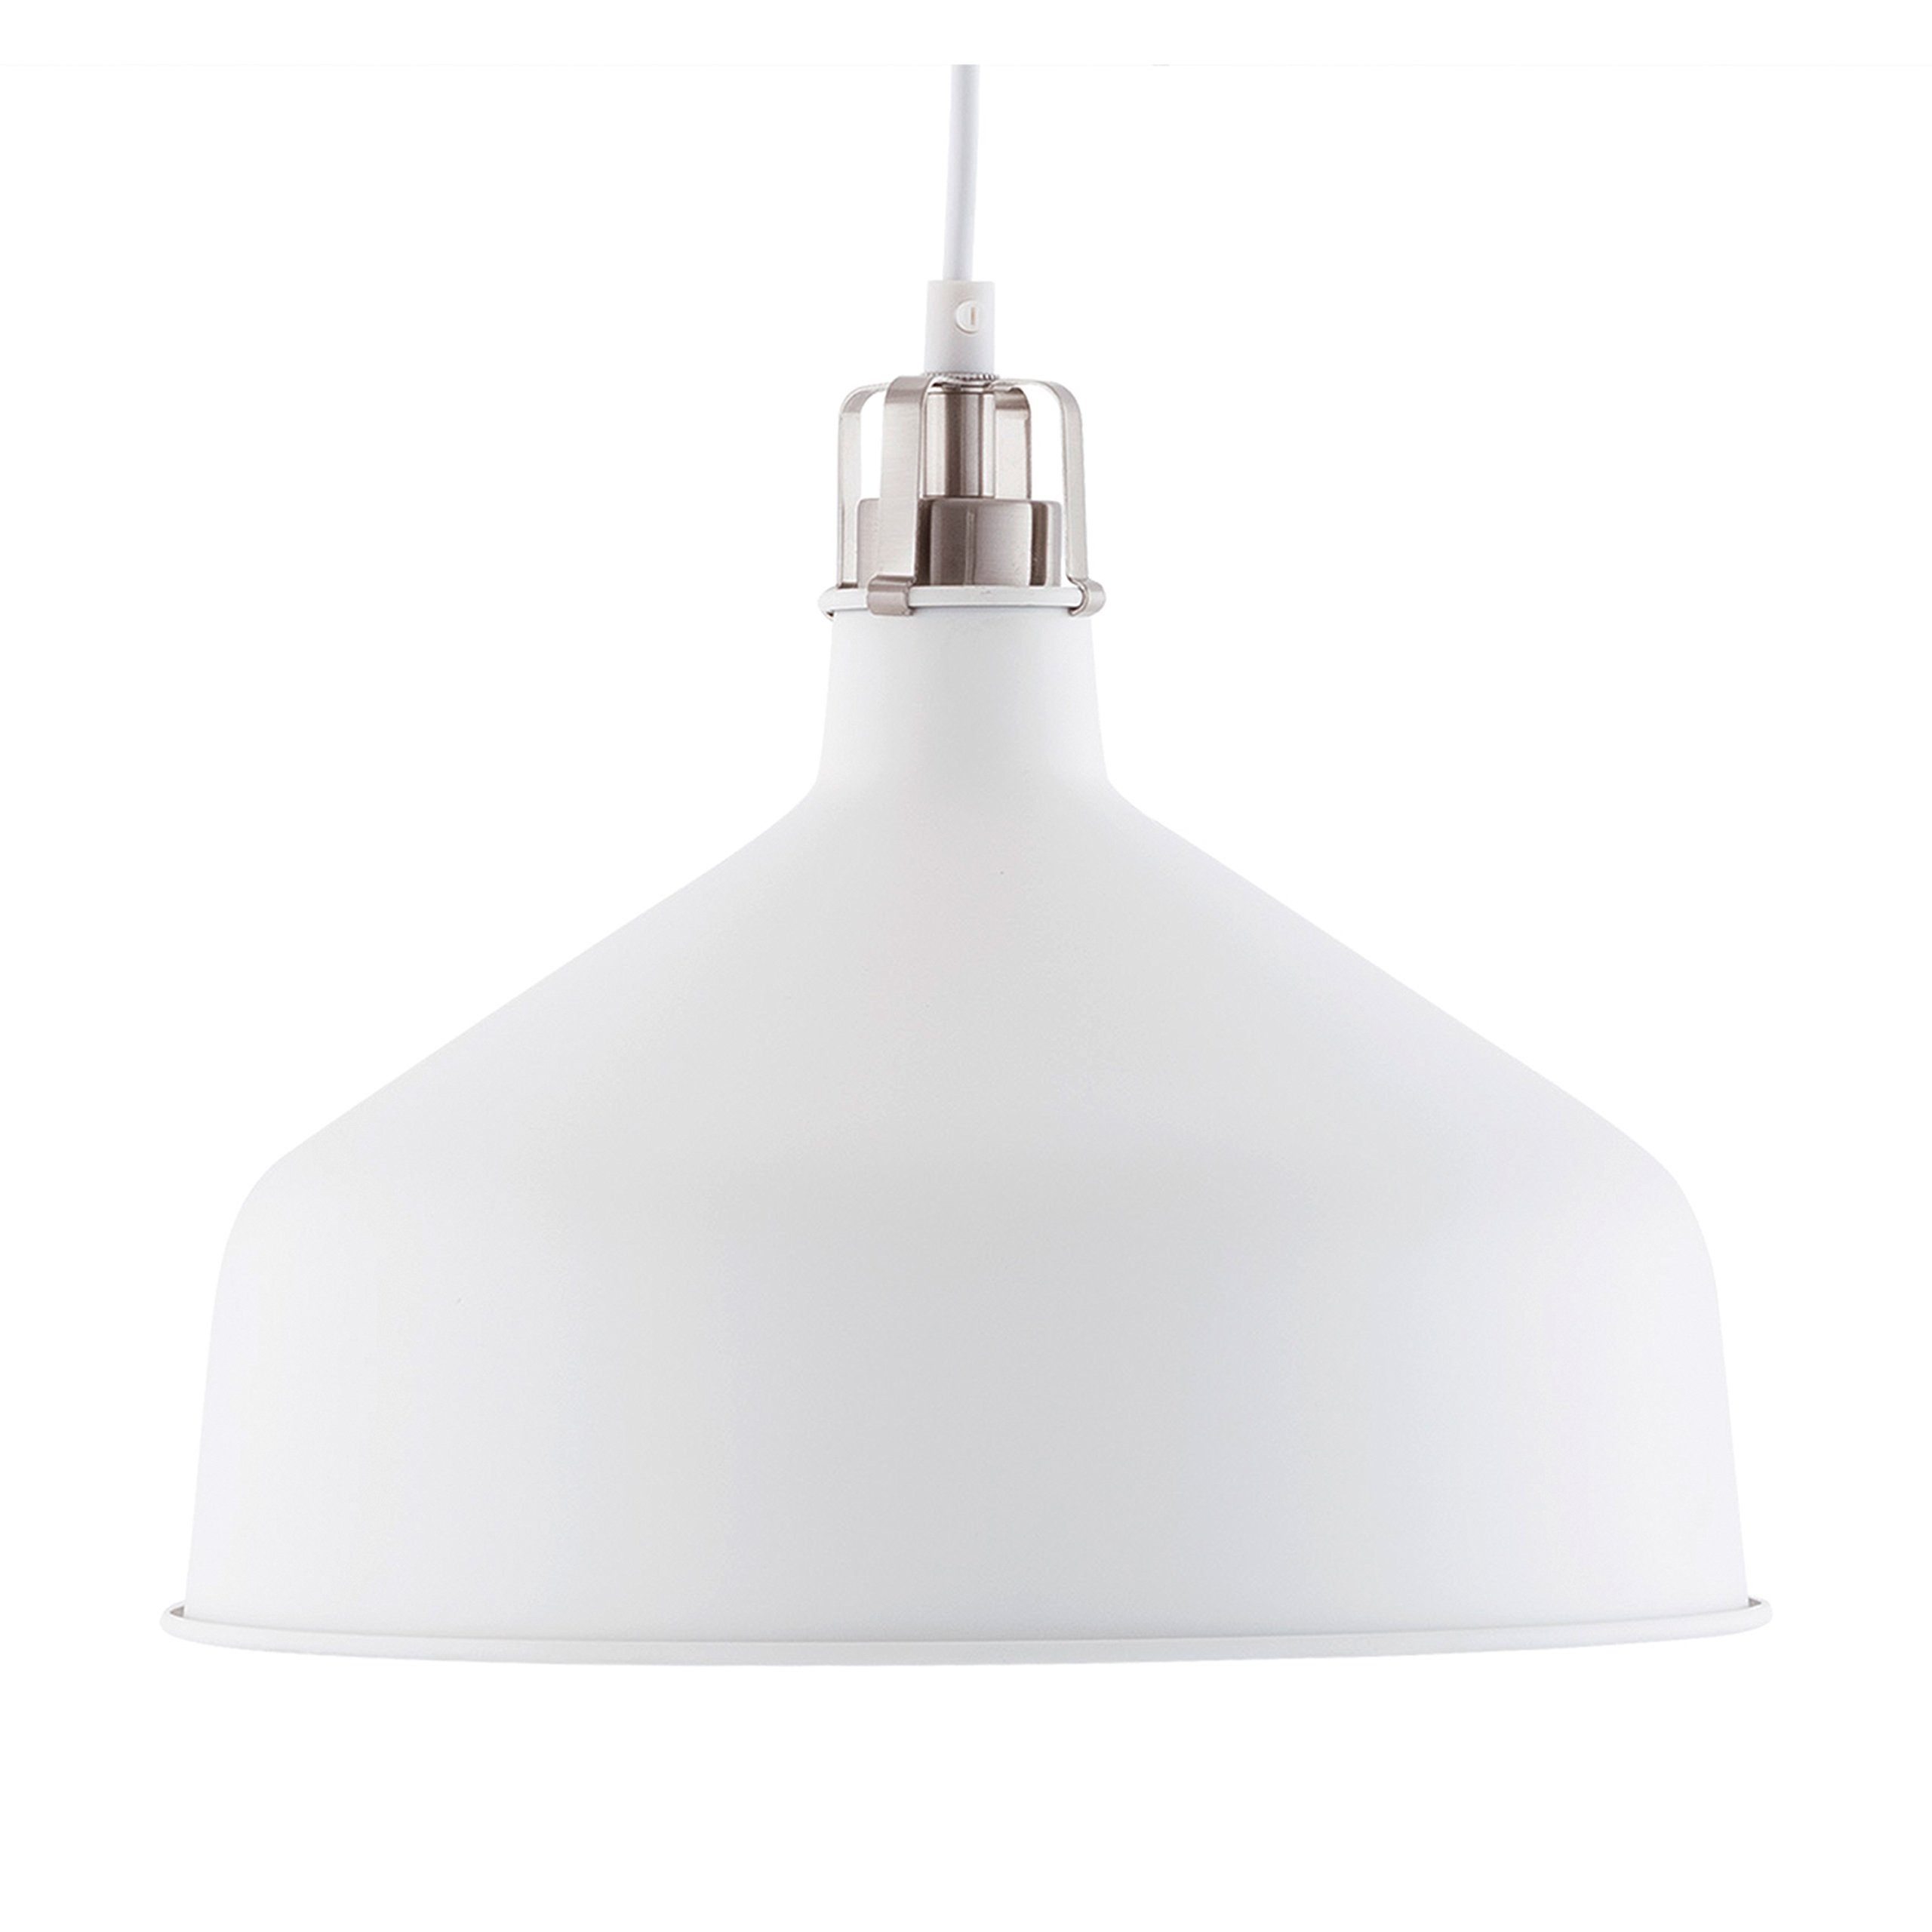 Light Society Banbury Pendant Light, Matte White Shade with Brushed Nickel Finish, Modern Industrial Farmhouse Lighting Fixture (LS-C167-WHI)